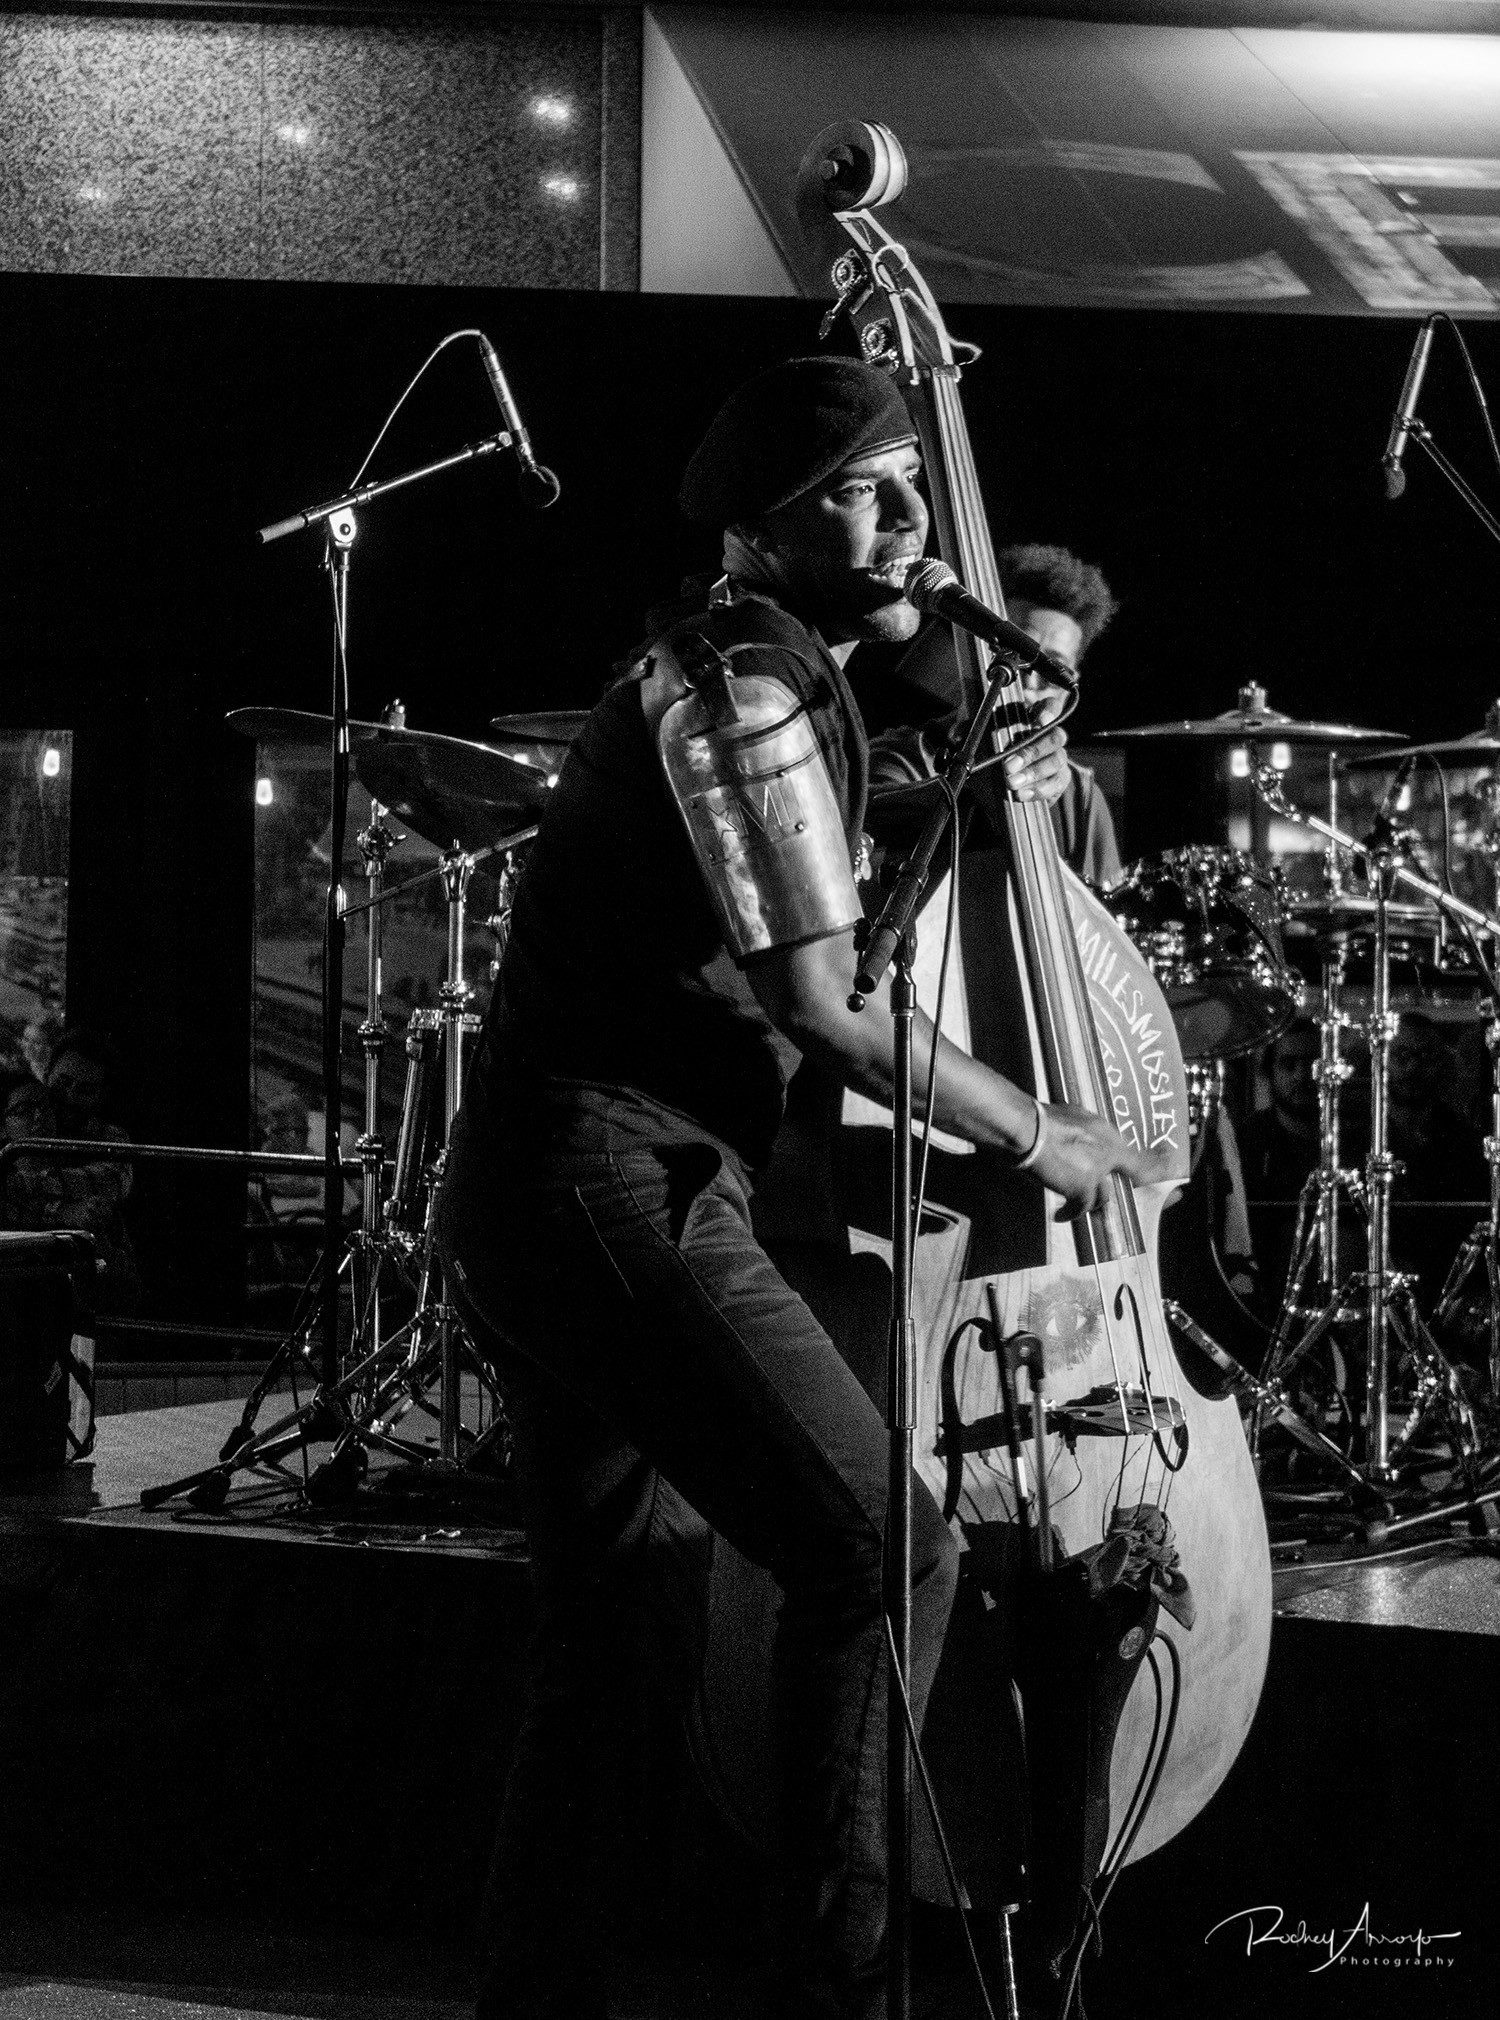 Miles Mosley in Detroit